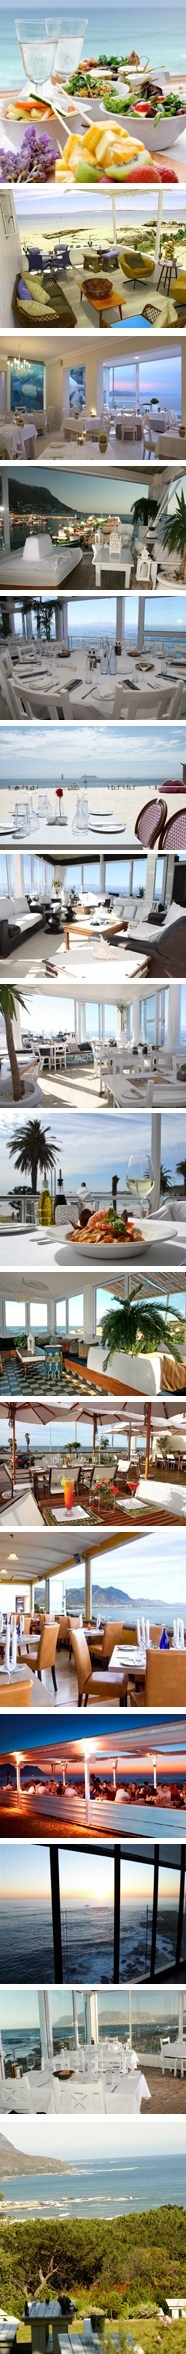 Restaurants with sea views in South Africa